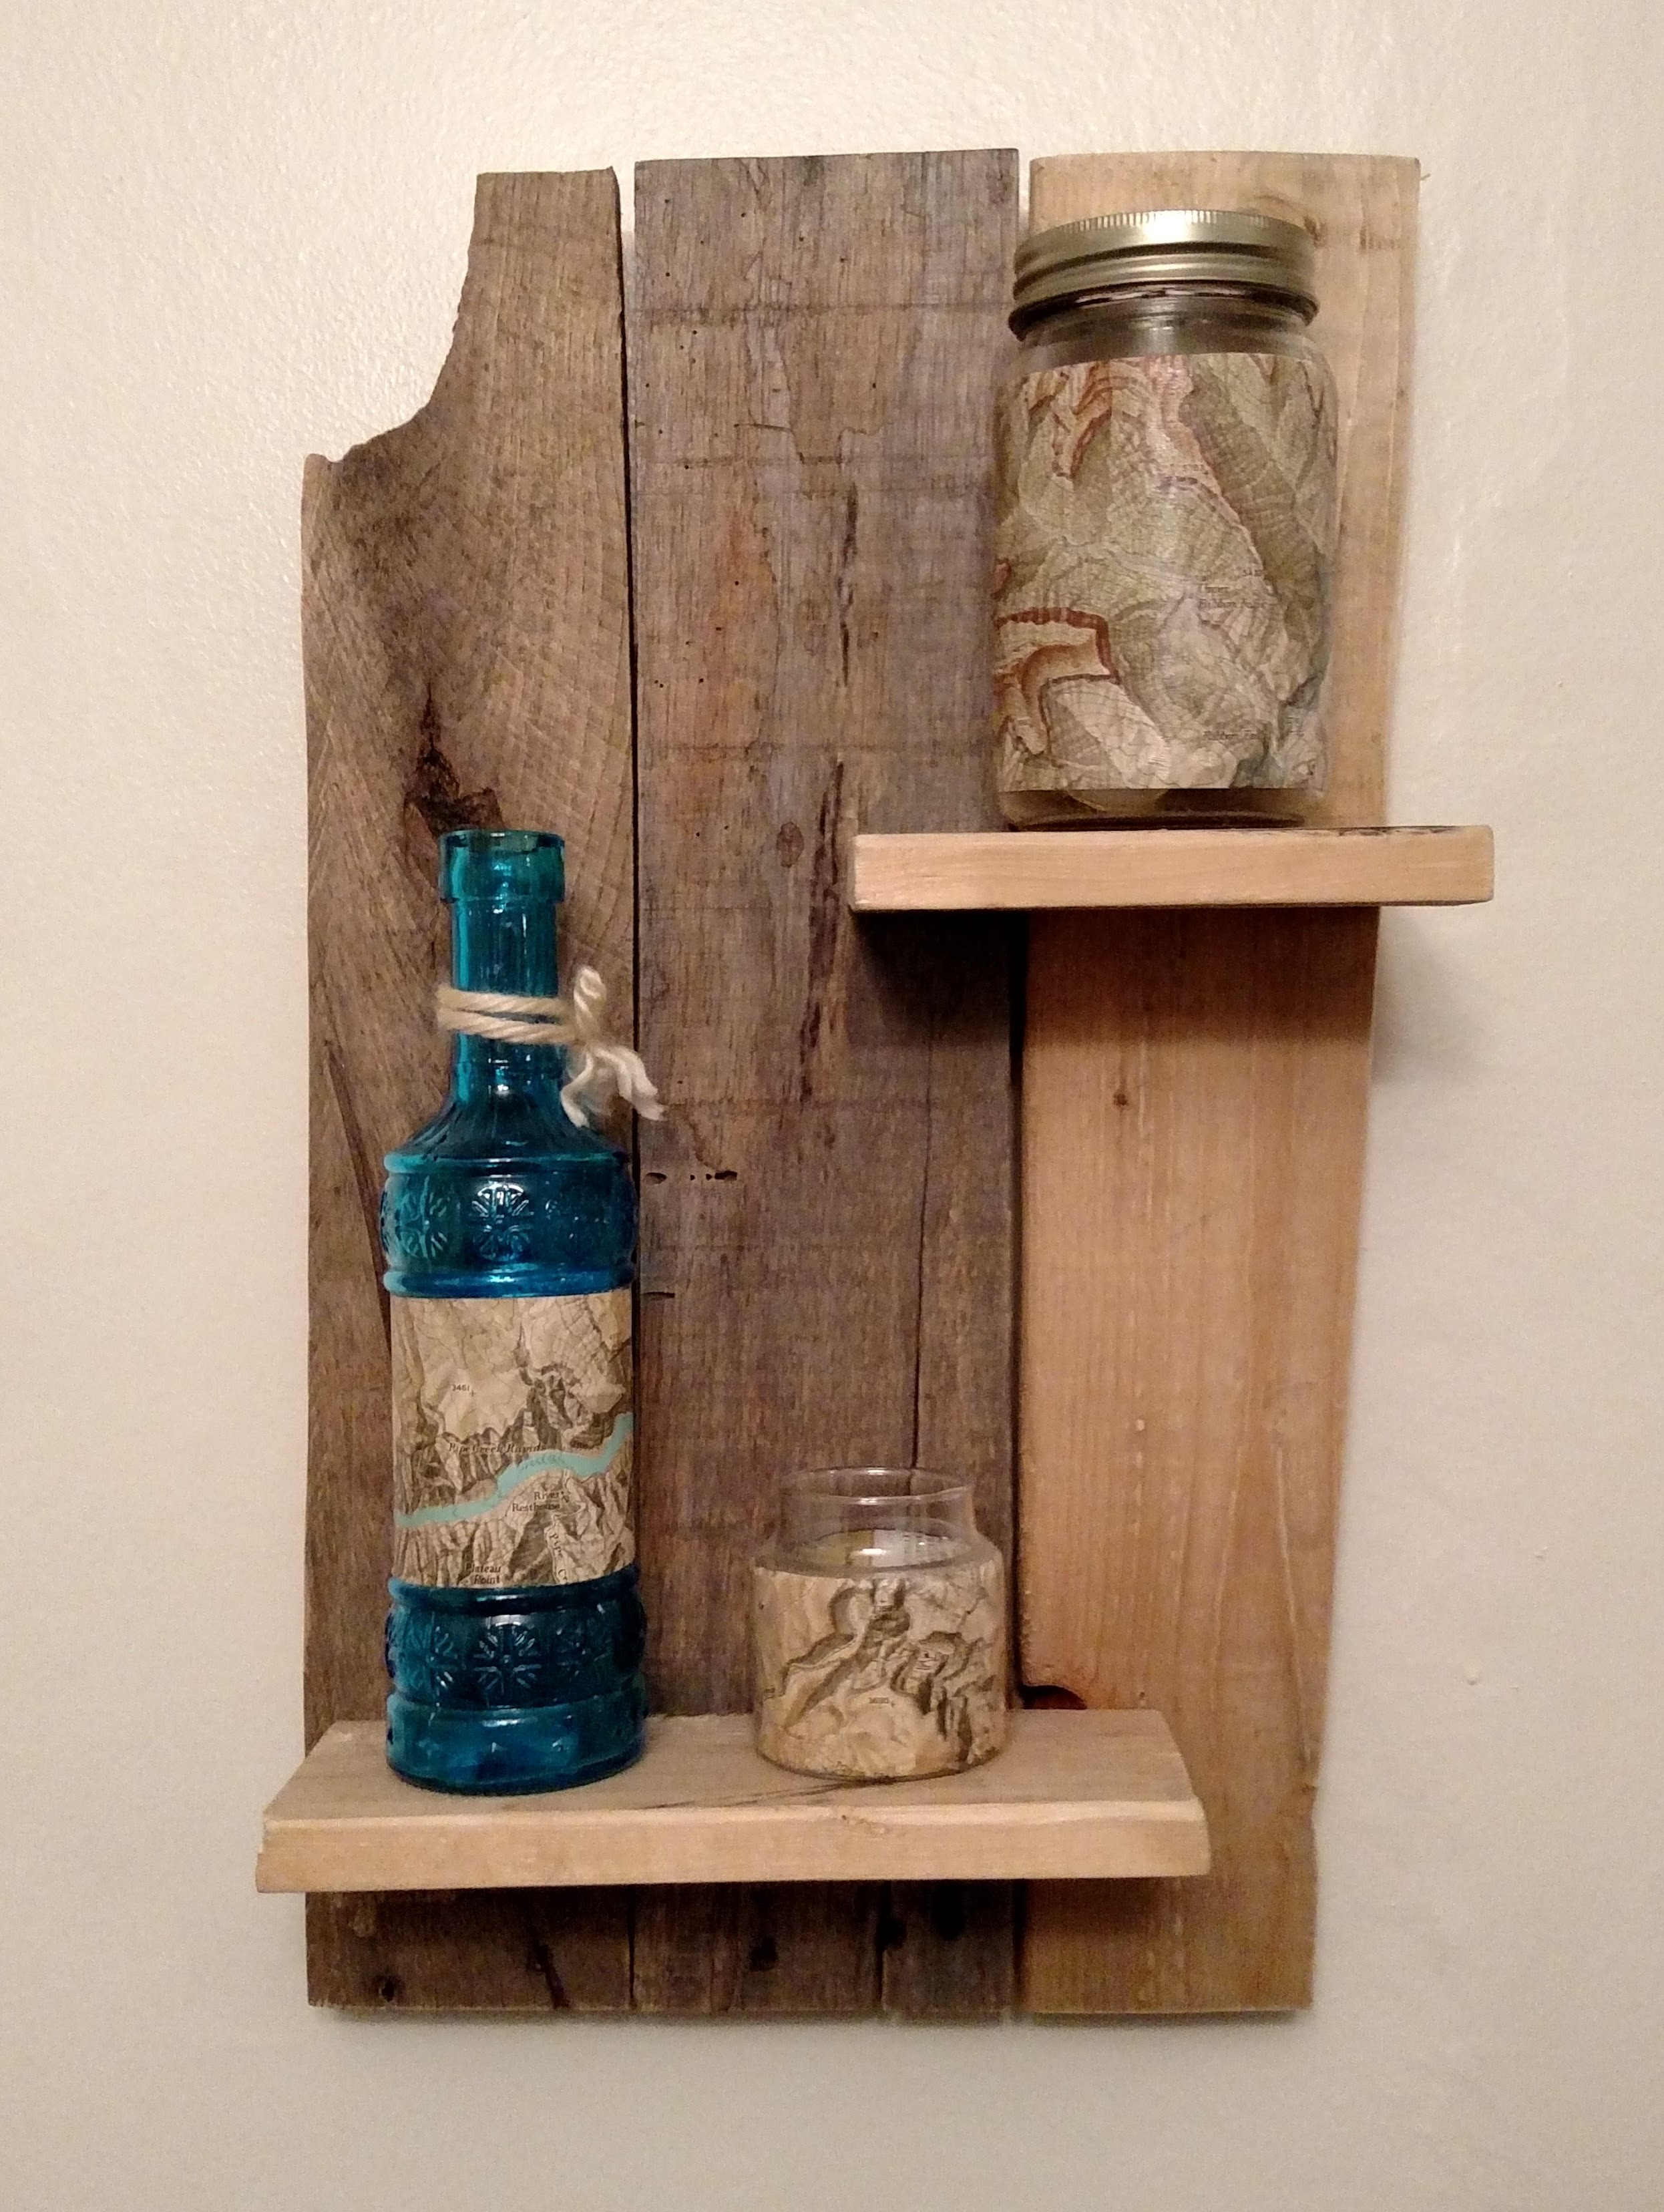 Witching Rustic Reclaimed Wood Wall Shelf Rustic Reclaimed Wood Wall Shelf Reclaimed Wood Shelves Denver Reclaimed Wood Shelves Portland houzz-03 Reclaimed Wood Shelves